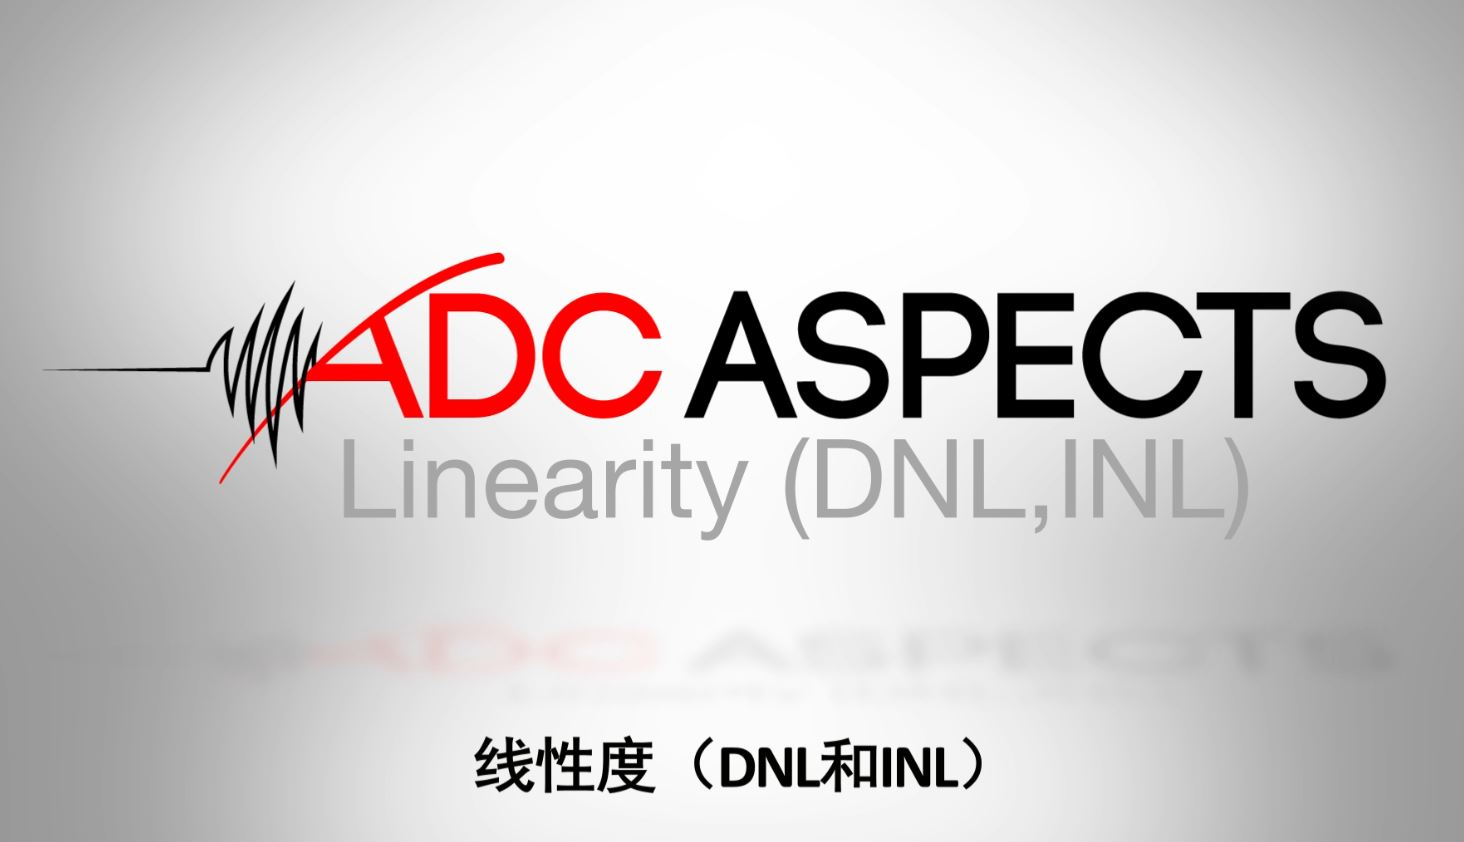 ADC ASPECTS 2 - 线性度(DNL和INL)